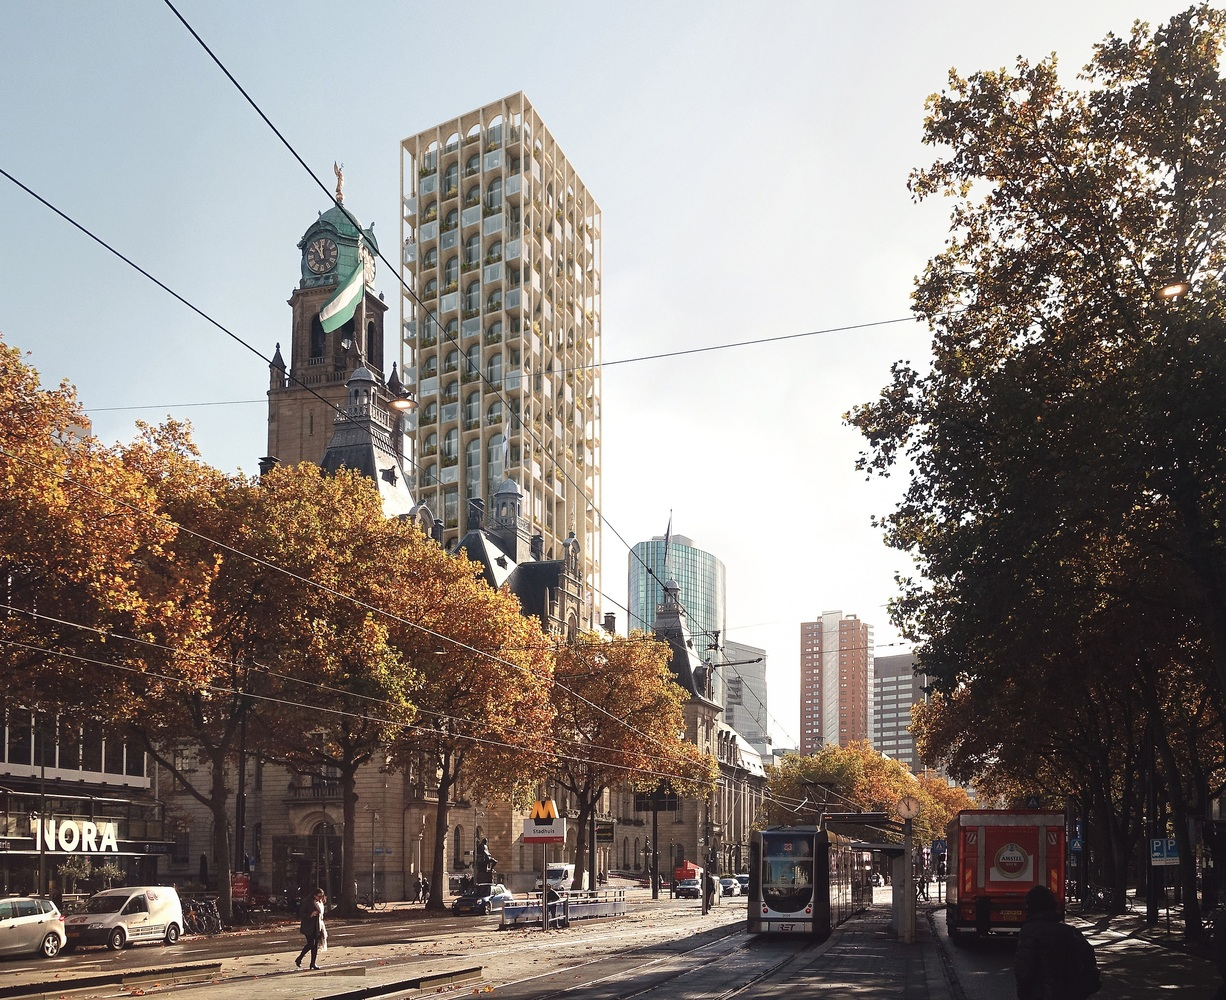 https://i.ibb.co/w7X4rX9/ODA-View-from-Coolsingel-north-Forbes-Massie.jpg